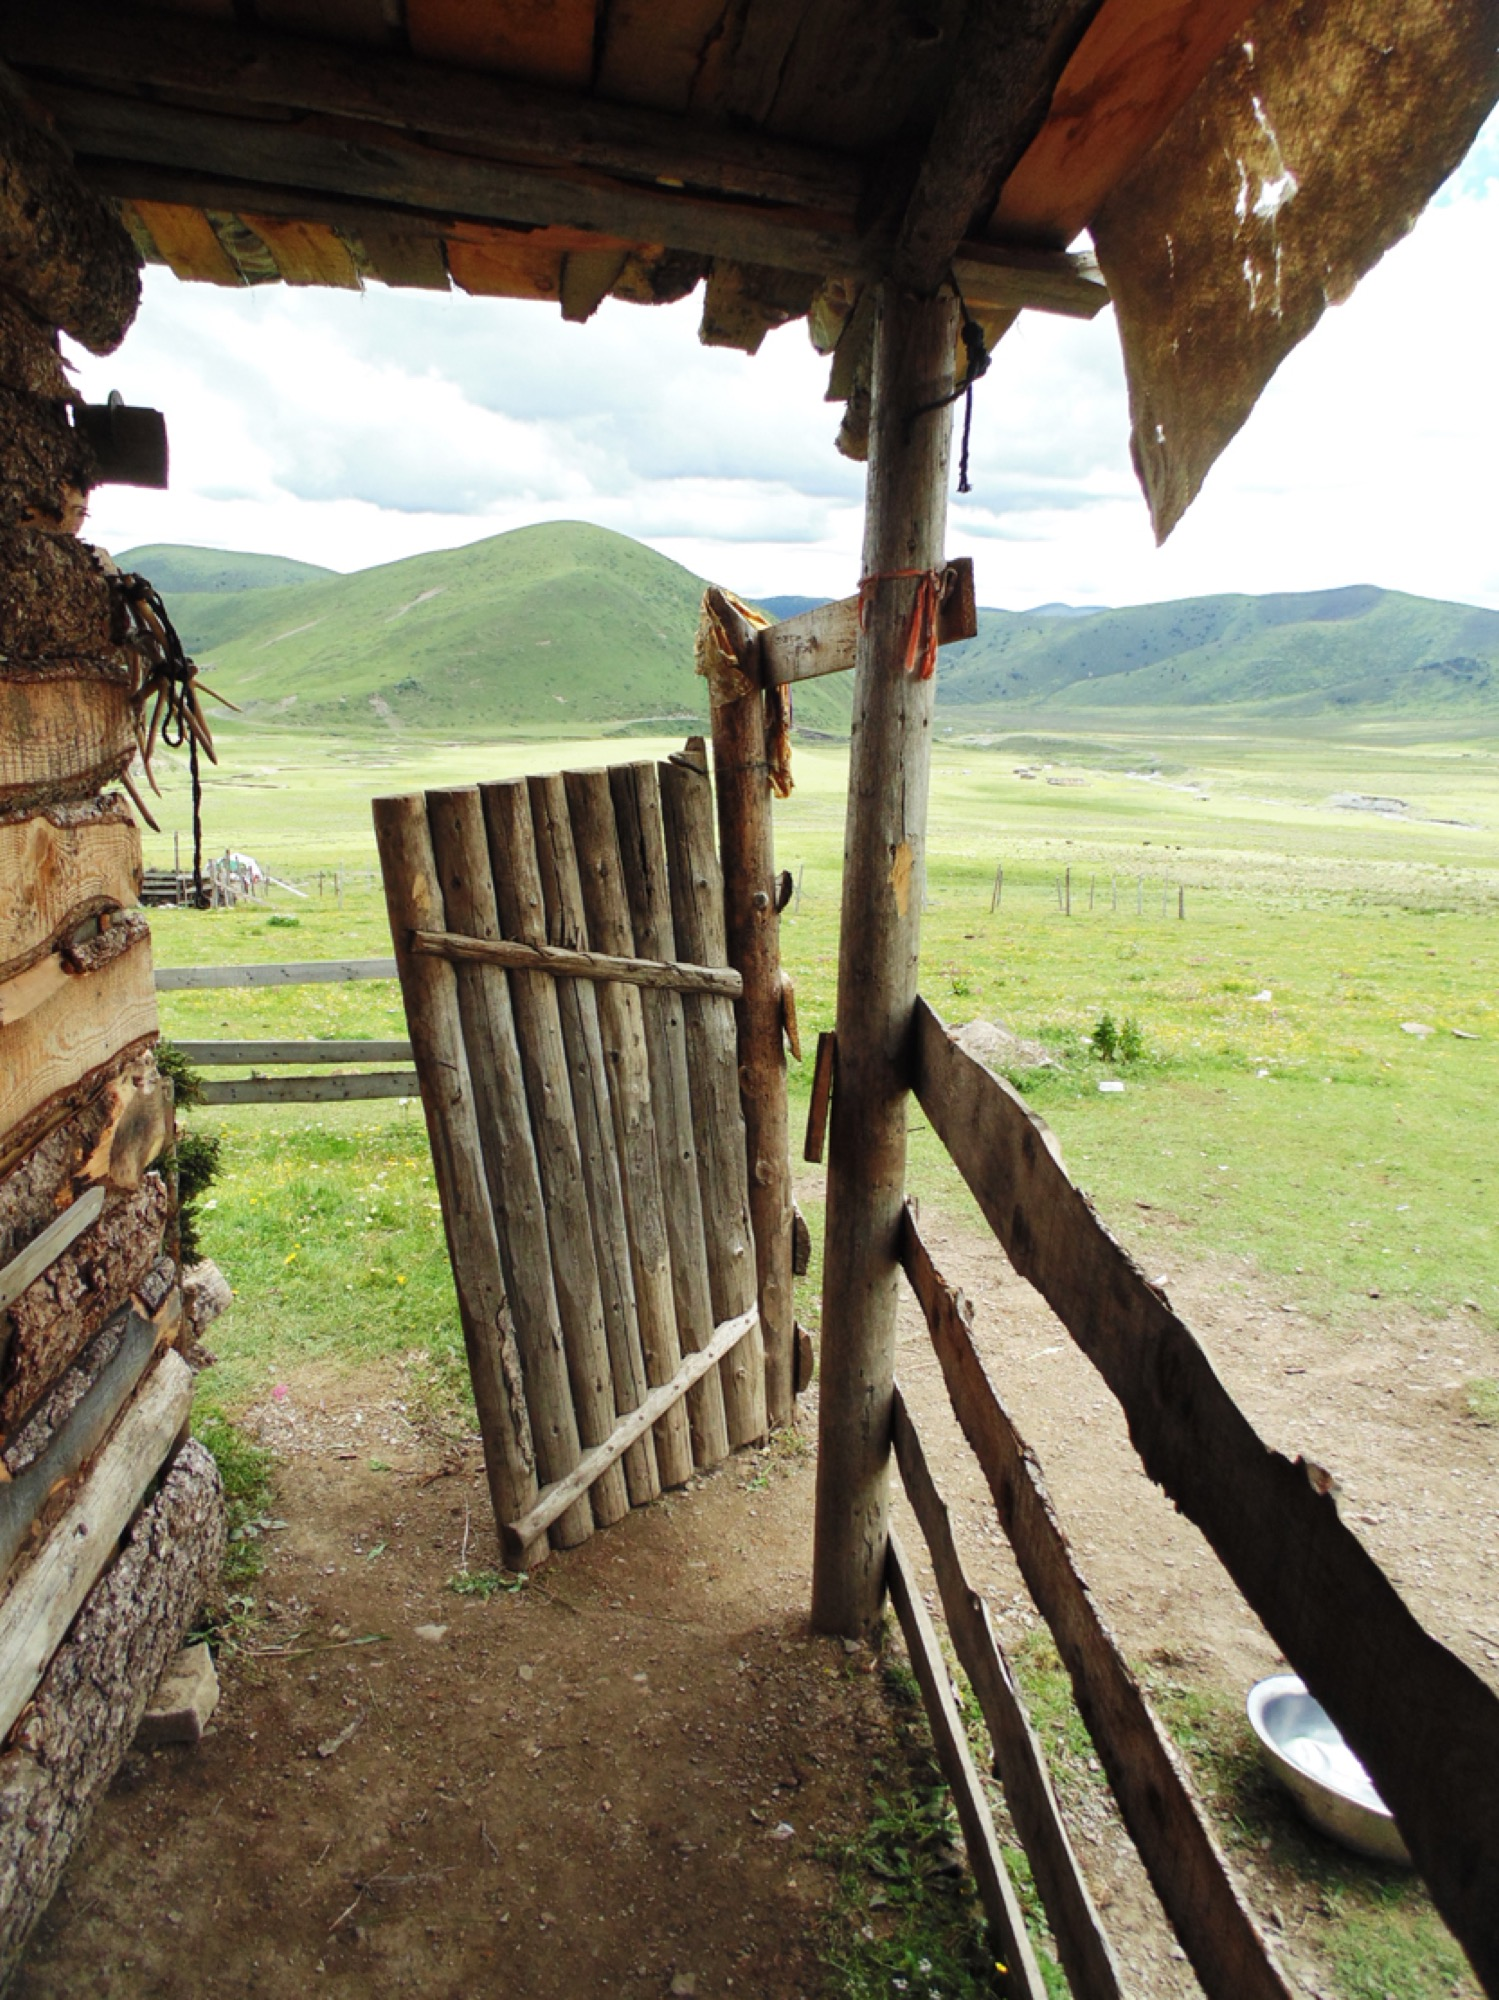 Photostory: Tibet, Towards the Roof of the World, by Arghya Ghosh 51